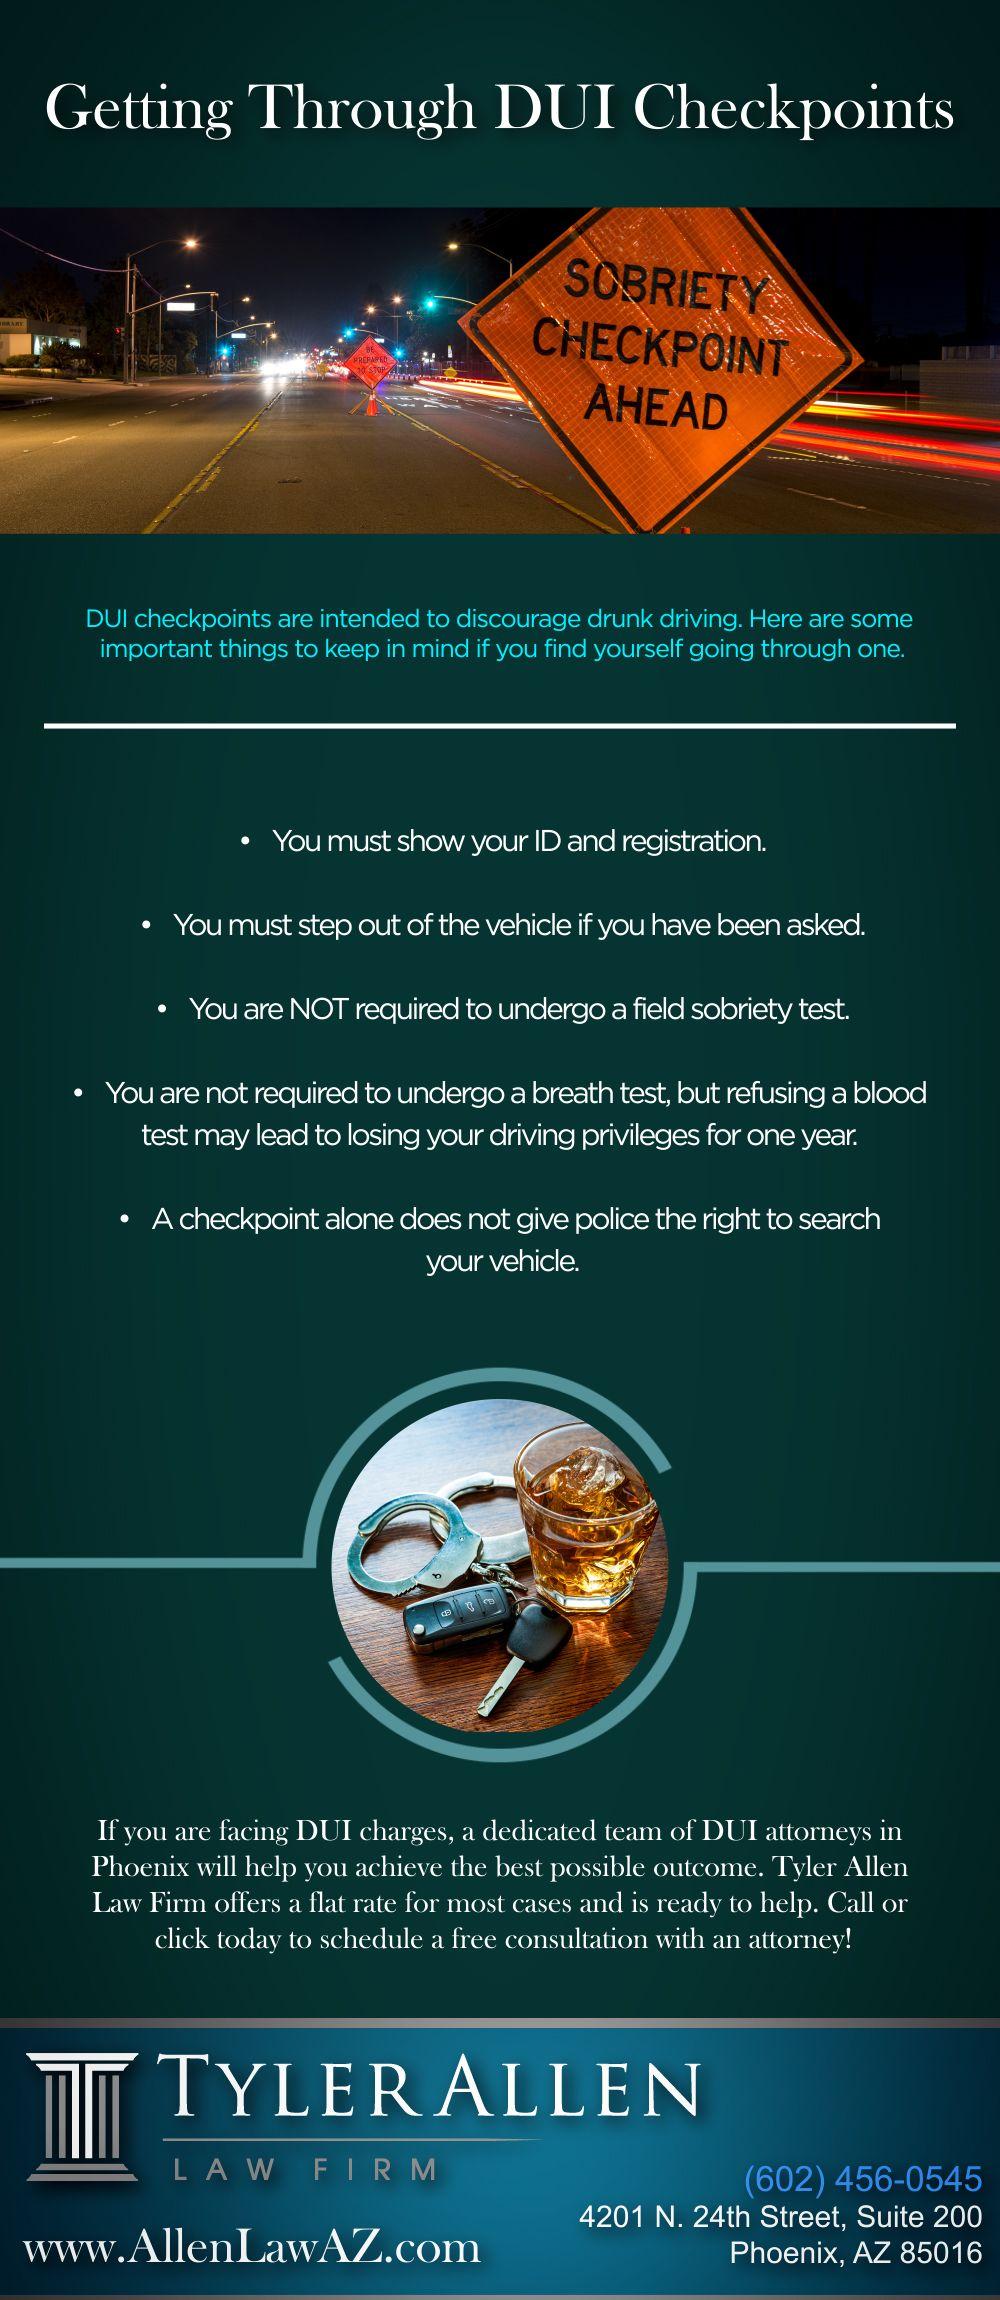 Getting through dui checkpoints dui law firm dui lawyer